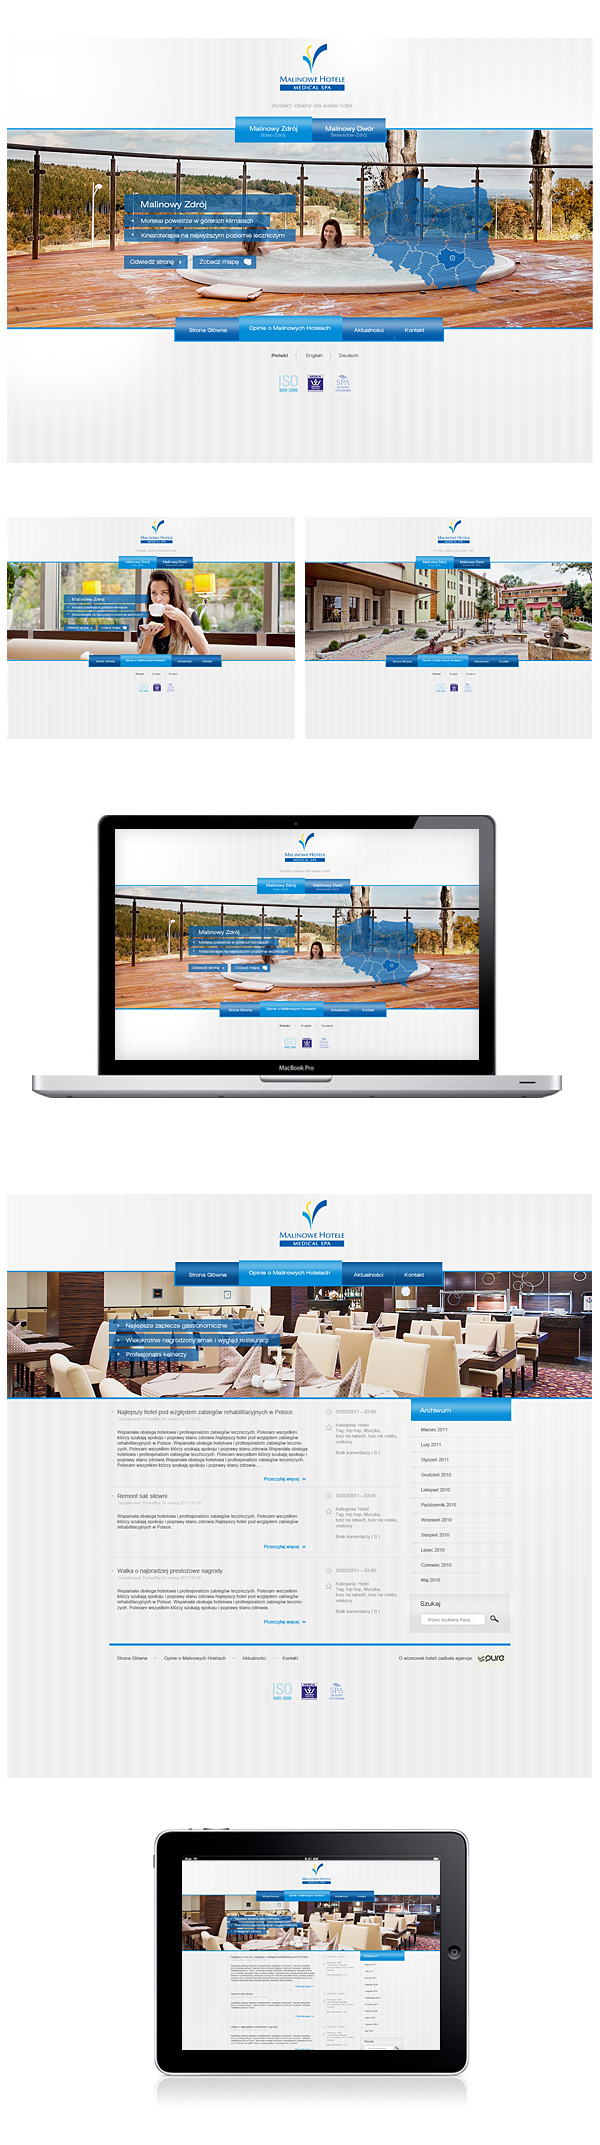 9f874e0b3d7326aecb1527e73d9be29e1 20 Interestingly Designed Wellness Resort Websites